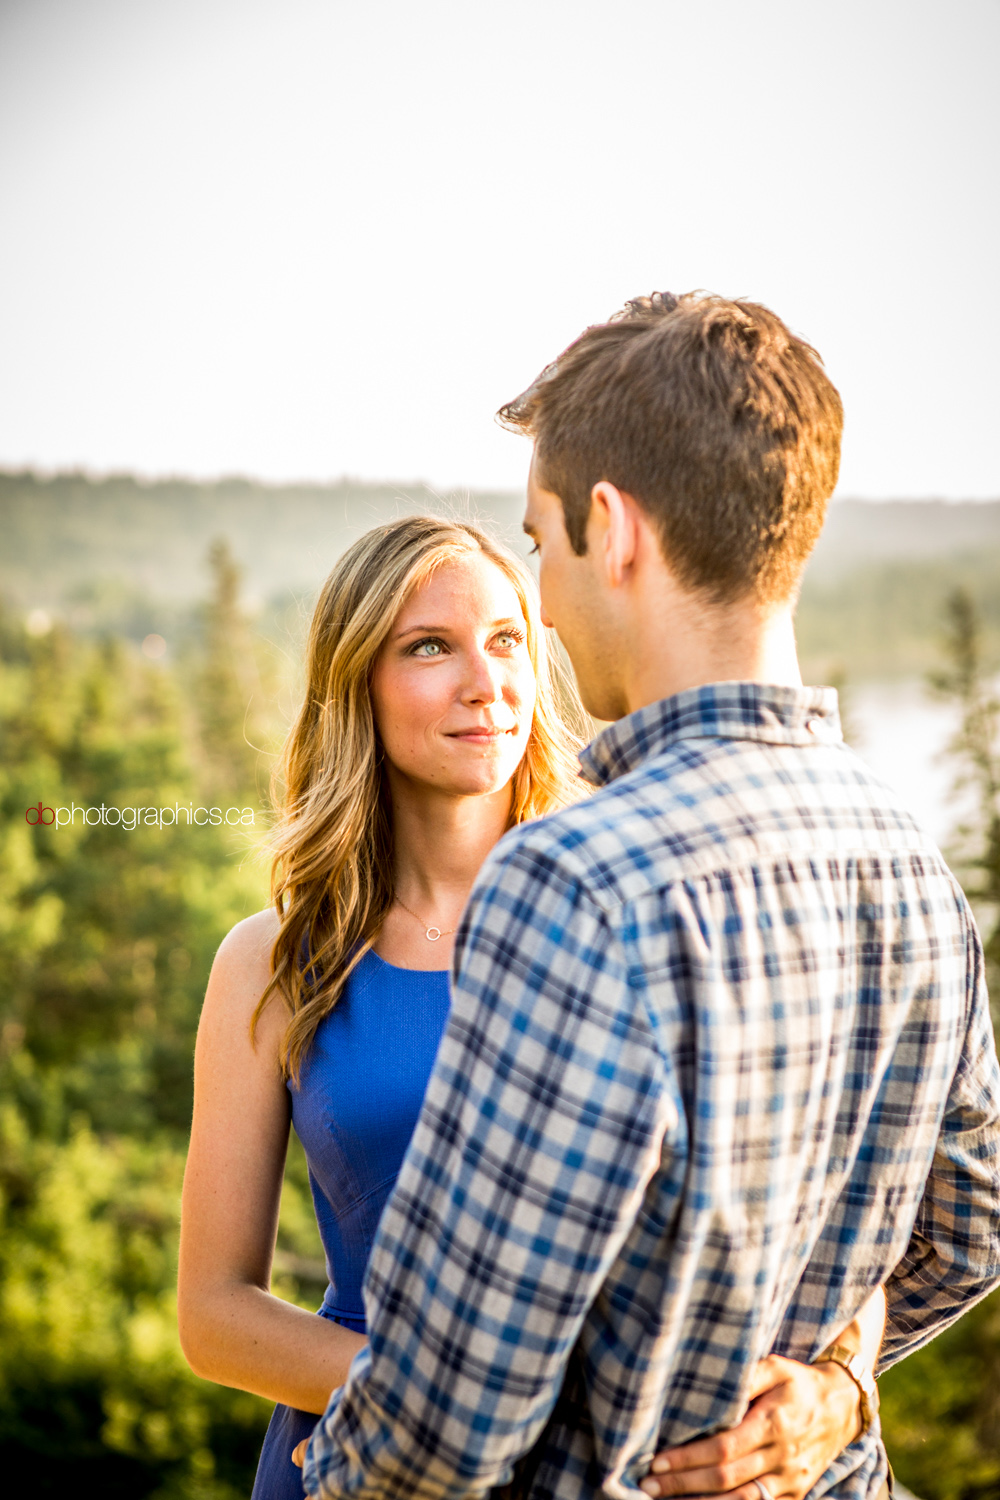 Ben & Melissa - Engagement Session - 20140713 - 0045.jpg